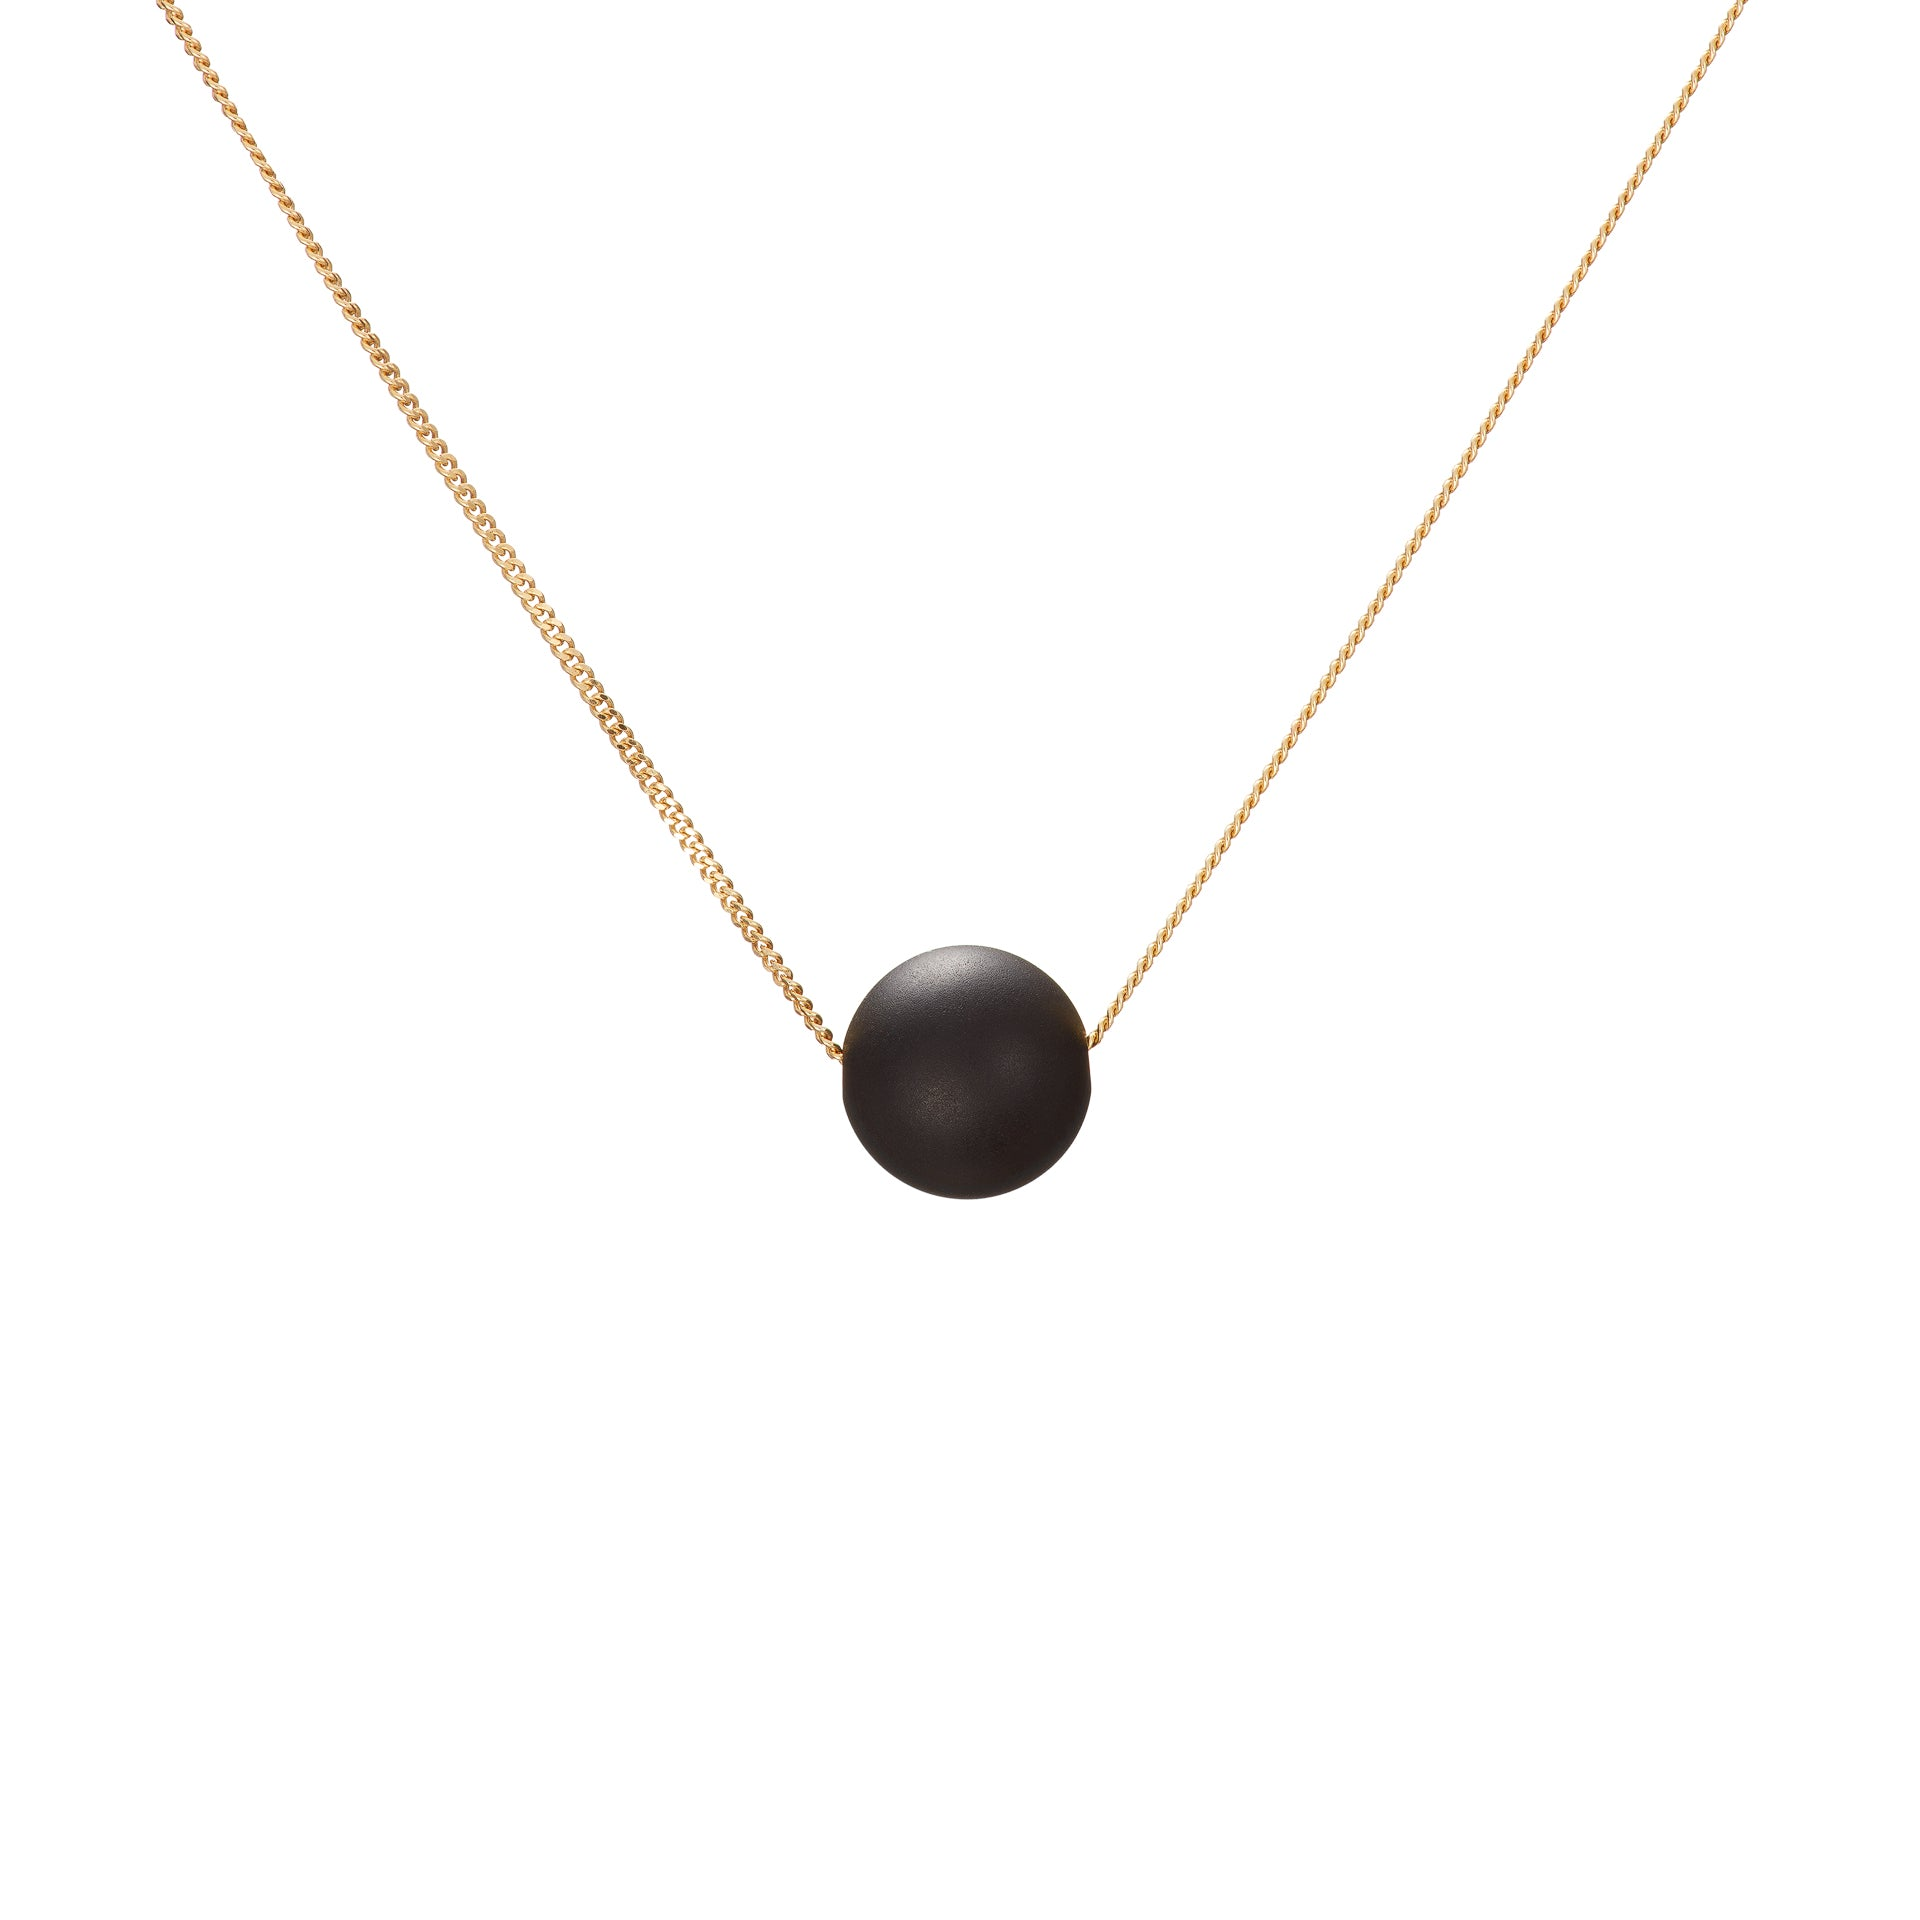 Solo Necklace - Matte Black Onyx